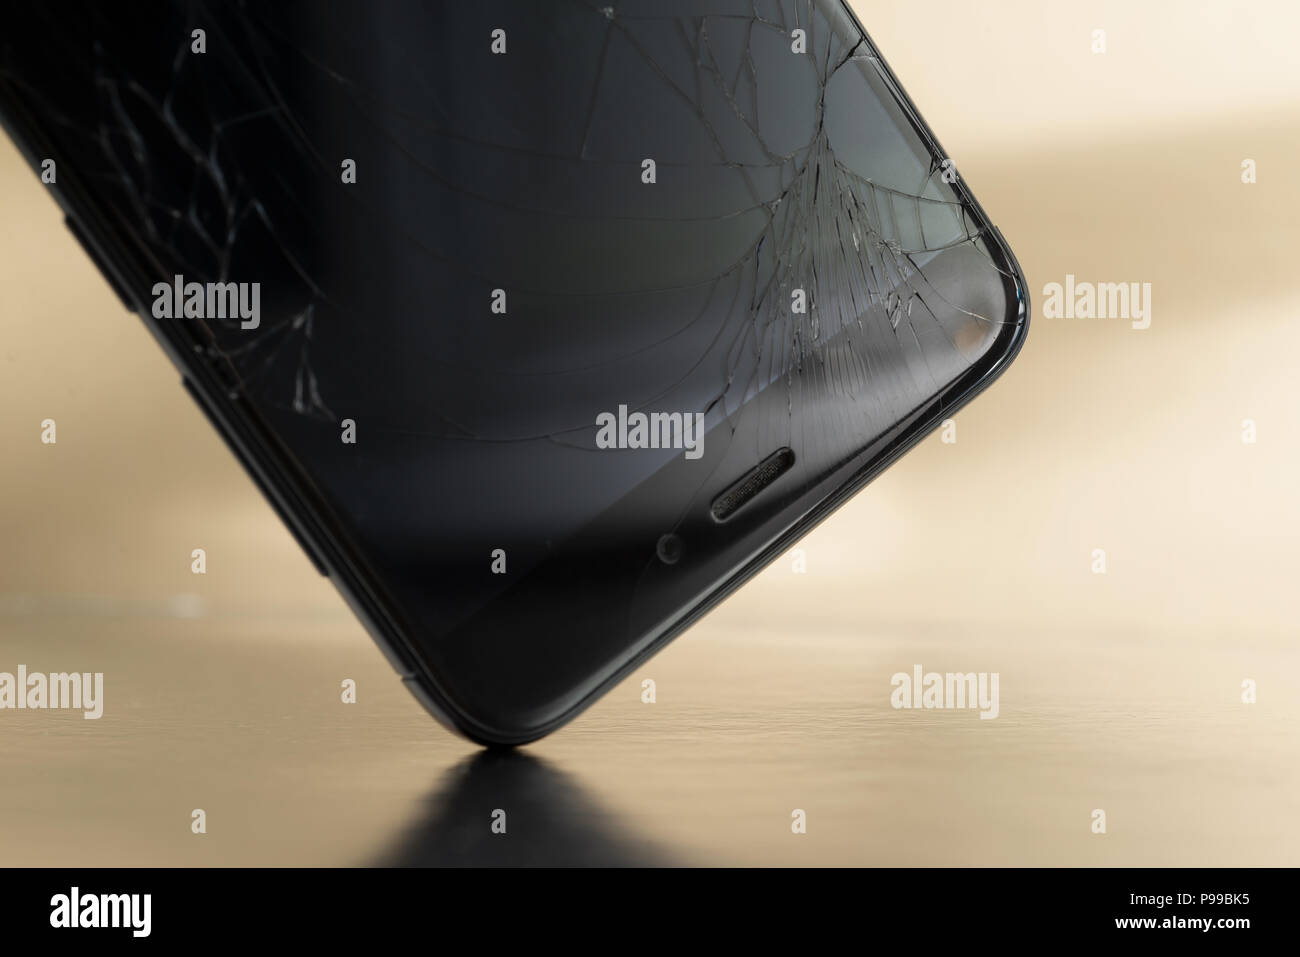 Minsk Belarus Jule 13 2018 Shattered Display Of The Phone Xiaomi Redmi 3 Pro During A Fall To Floor At Shopping Center In